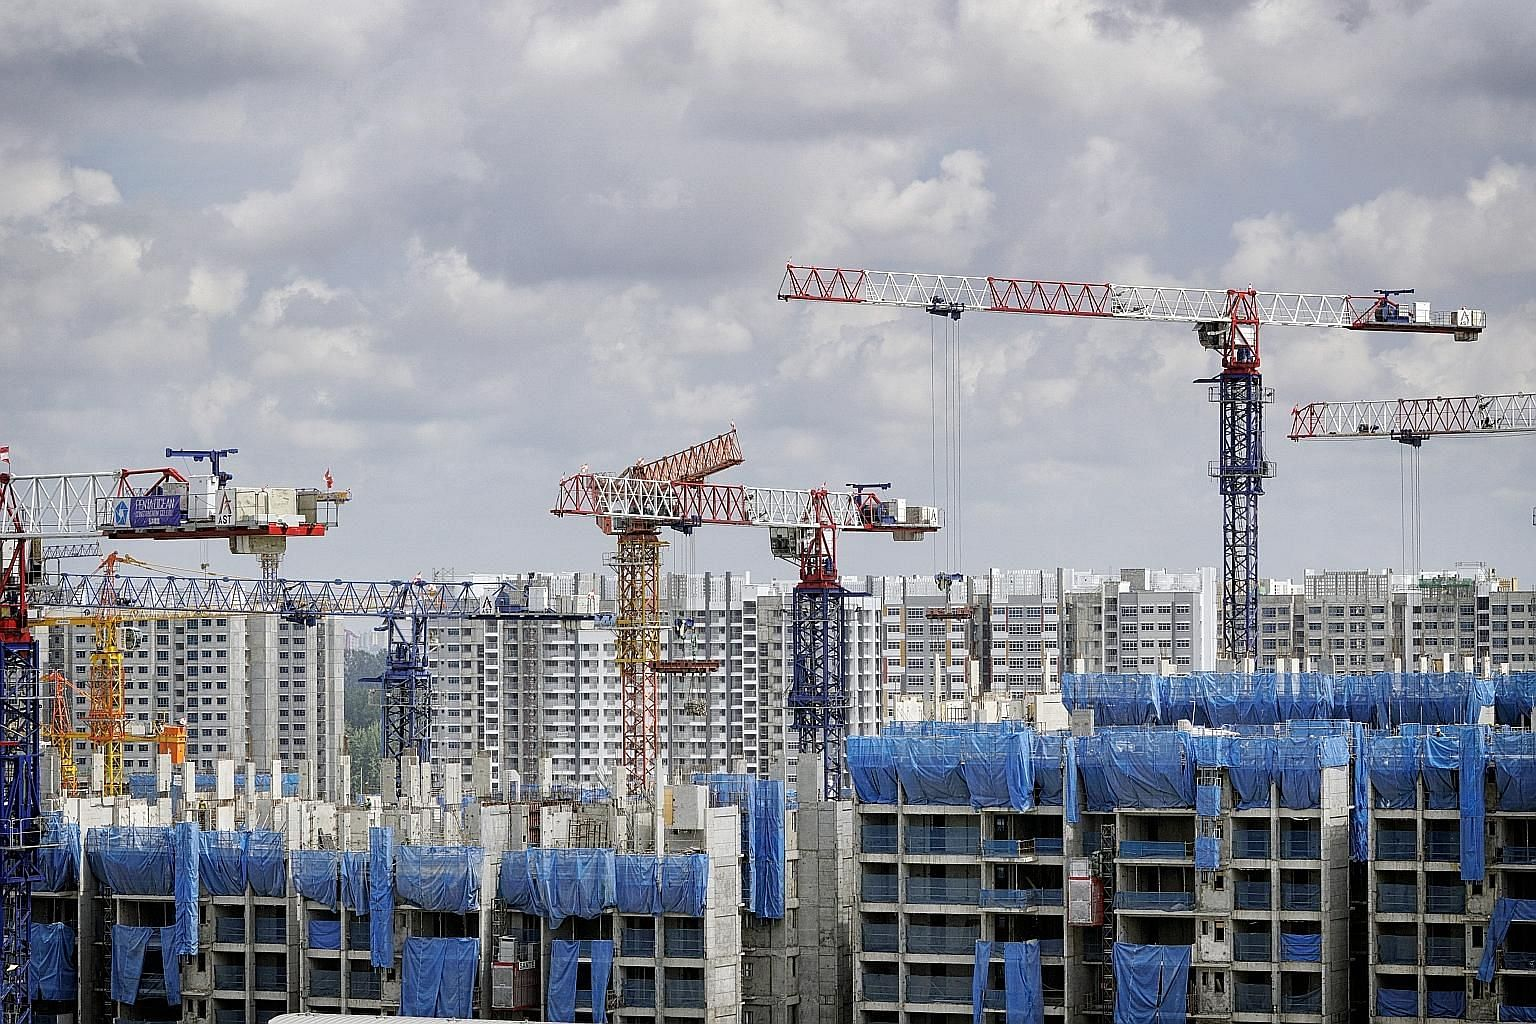 Some industry players and home owners are disappointed that there is nothing in this year's Budget to lift the flagging property sector, even though the Government had earlier indicated that it is premature to ease cooling measures. There were 23,271